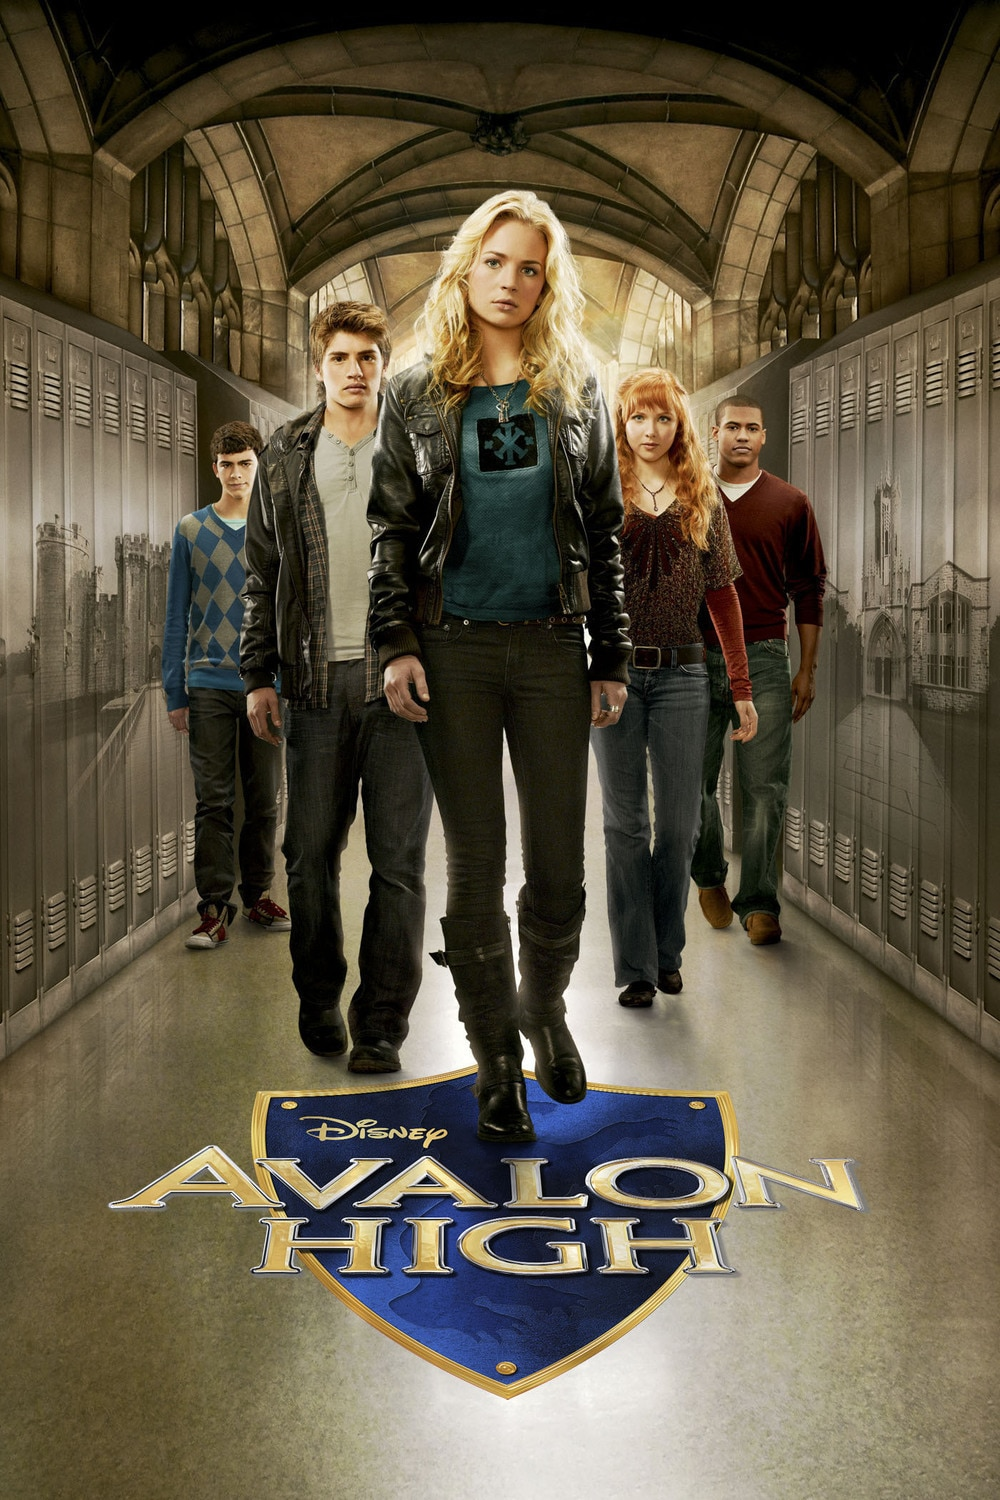 Image Result For Avalon High